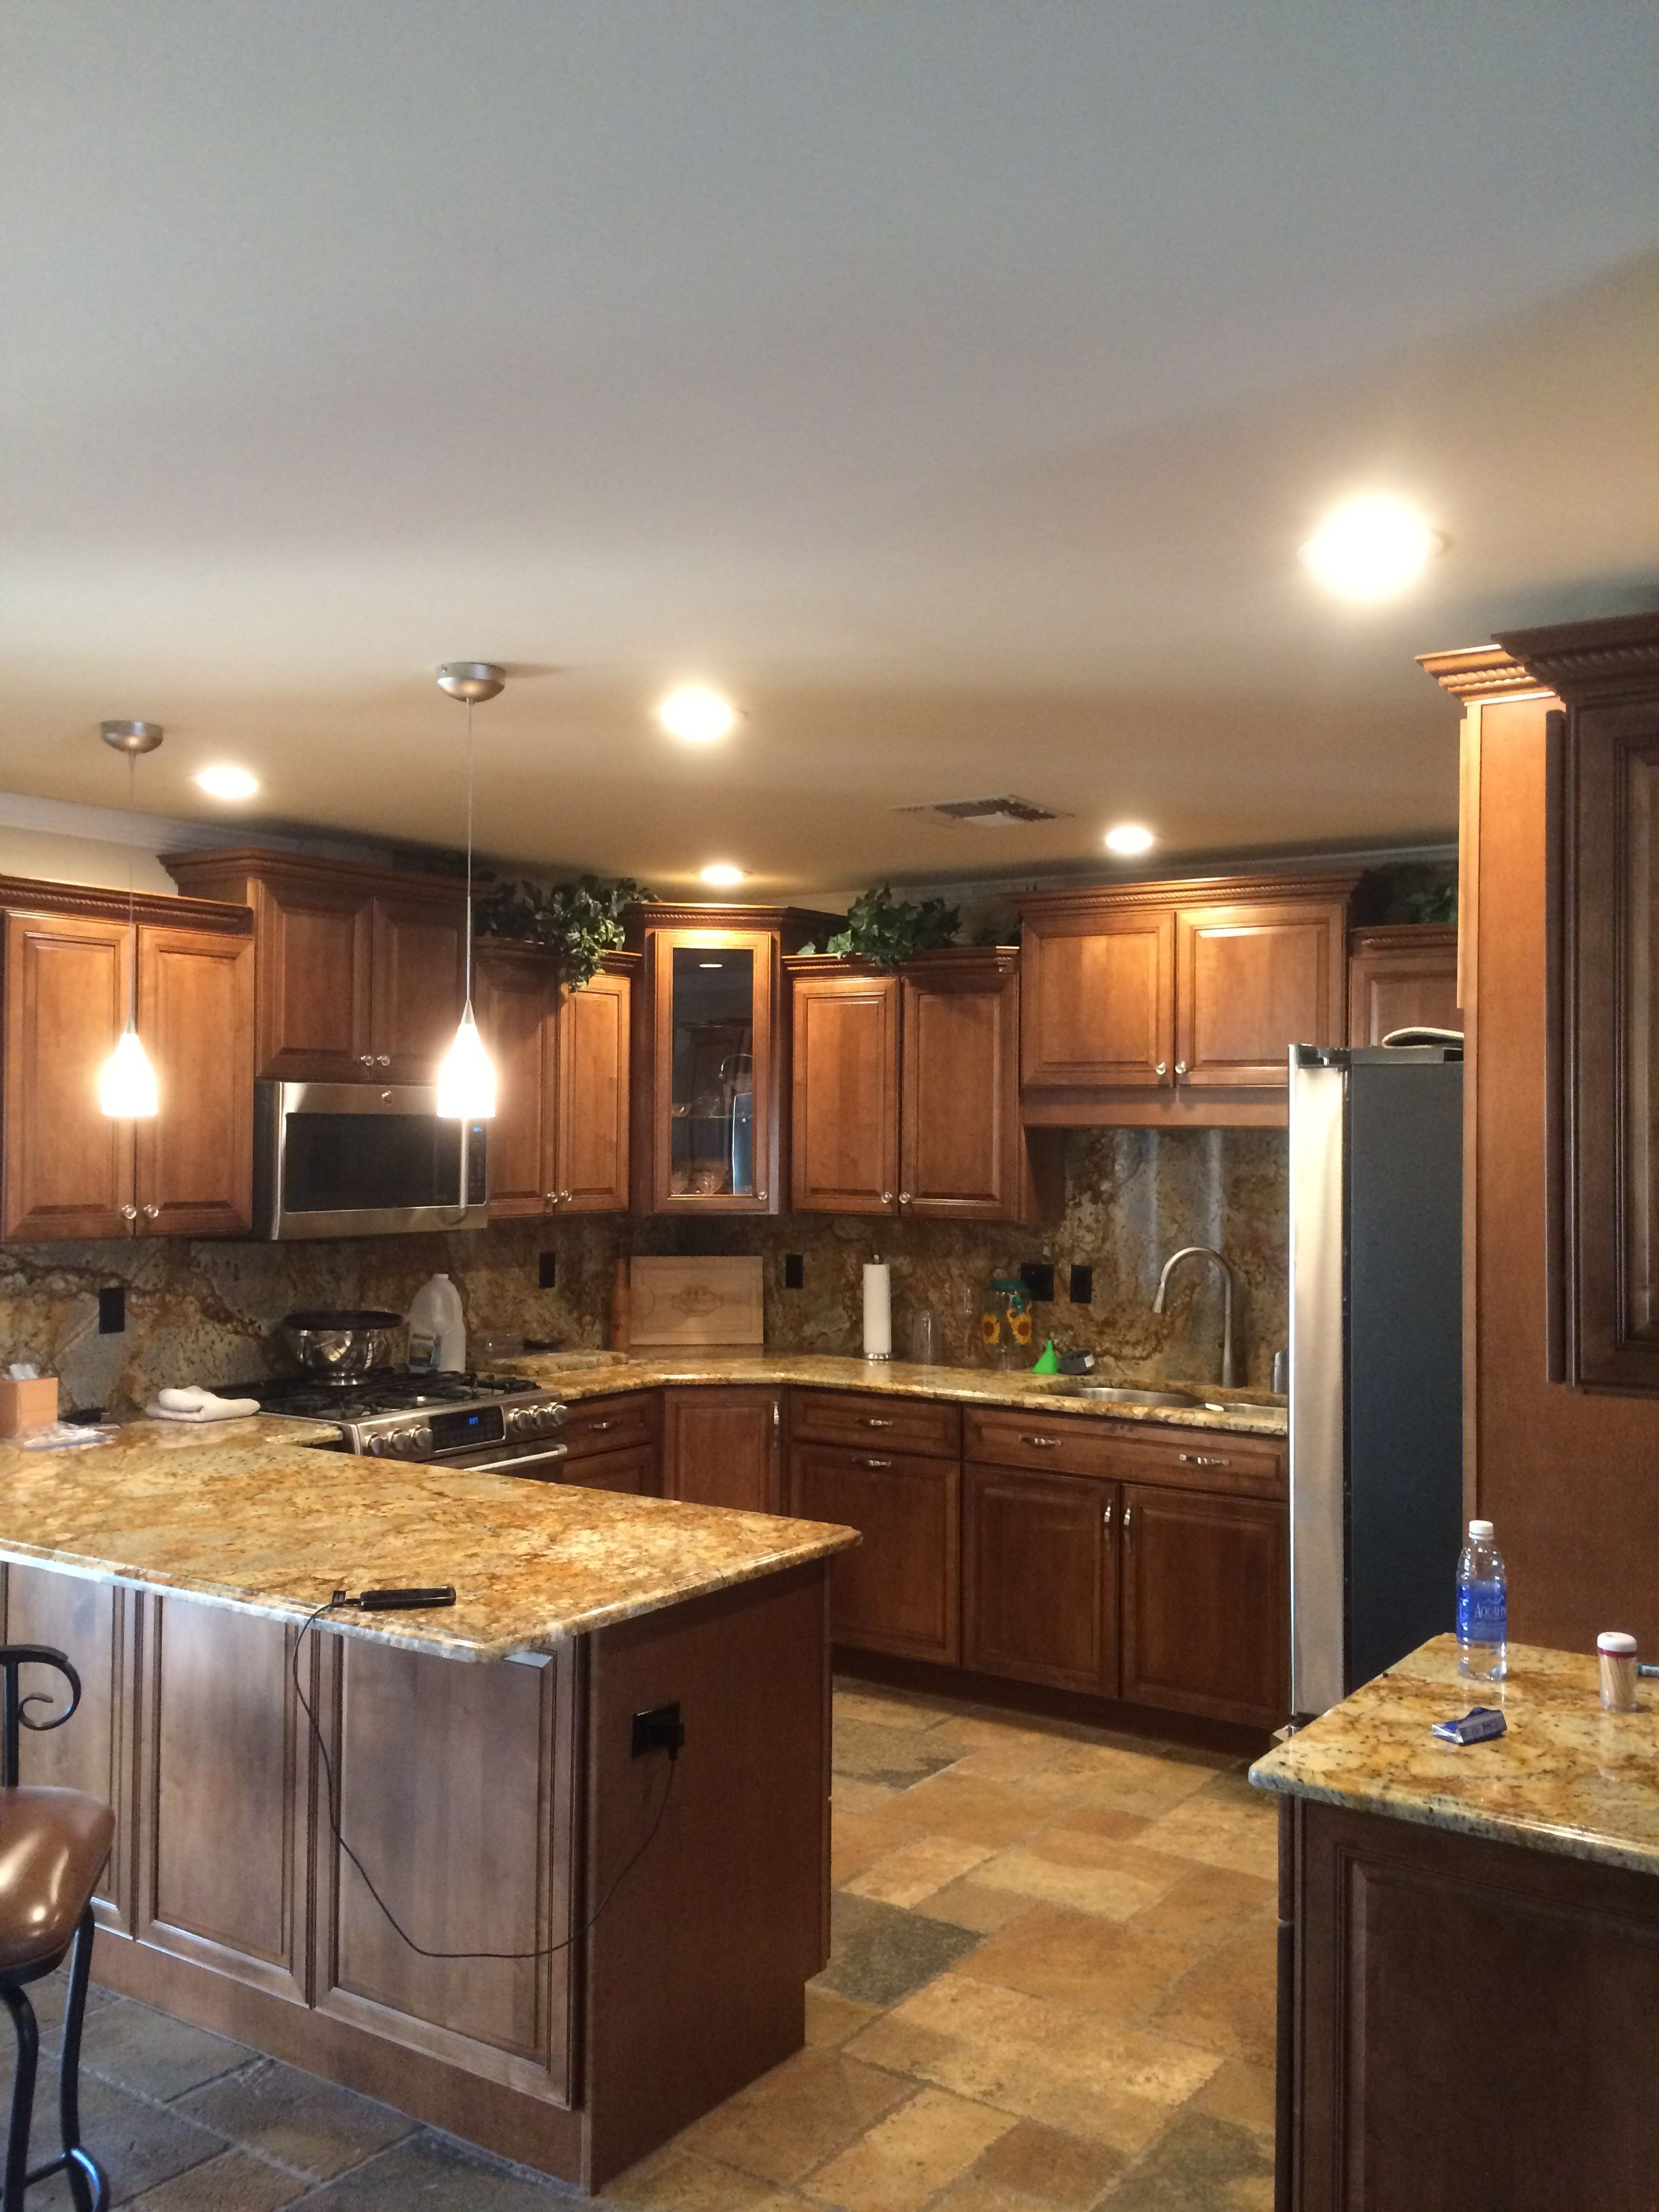 Az Recessed Lighting Installation Of 4 Inch Leds In Kitchen Az